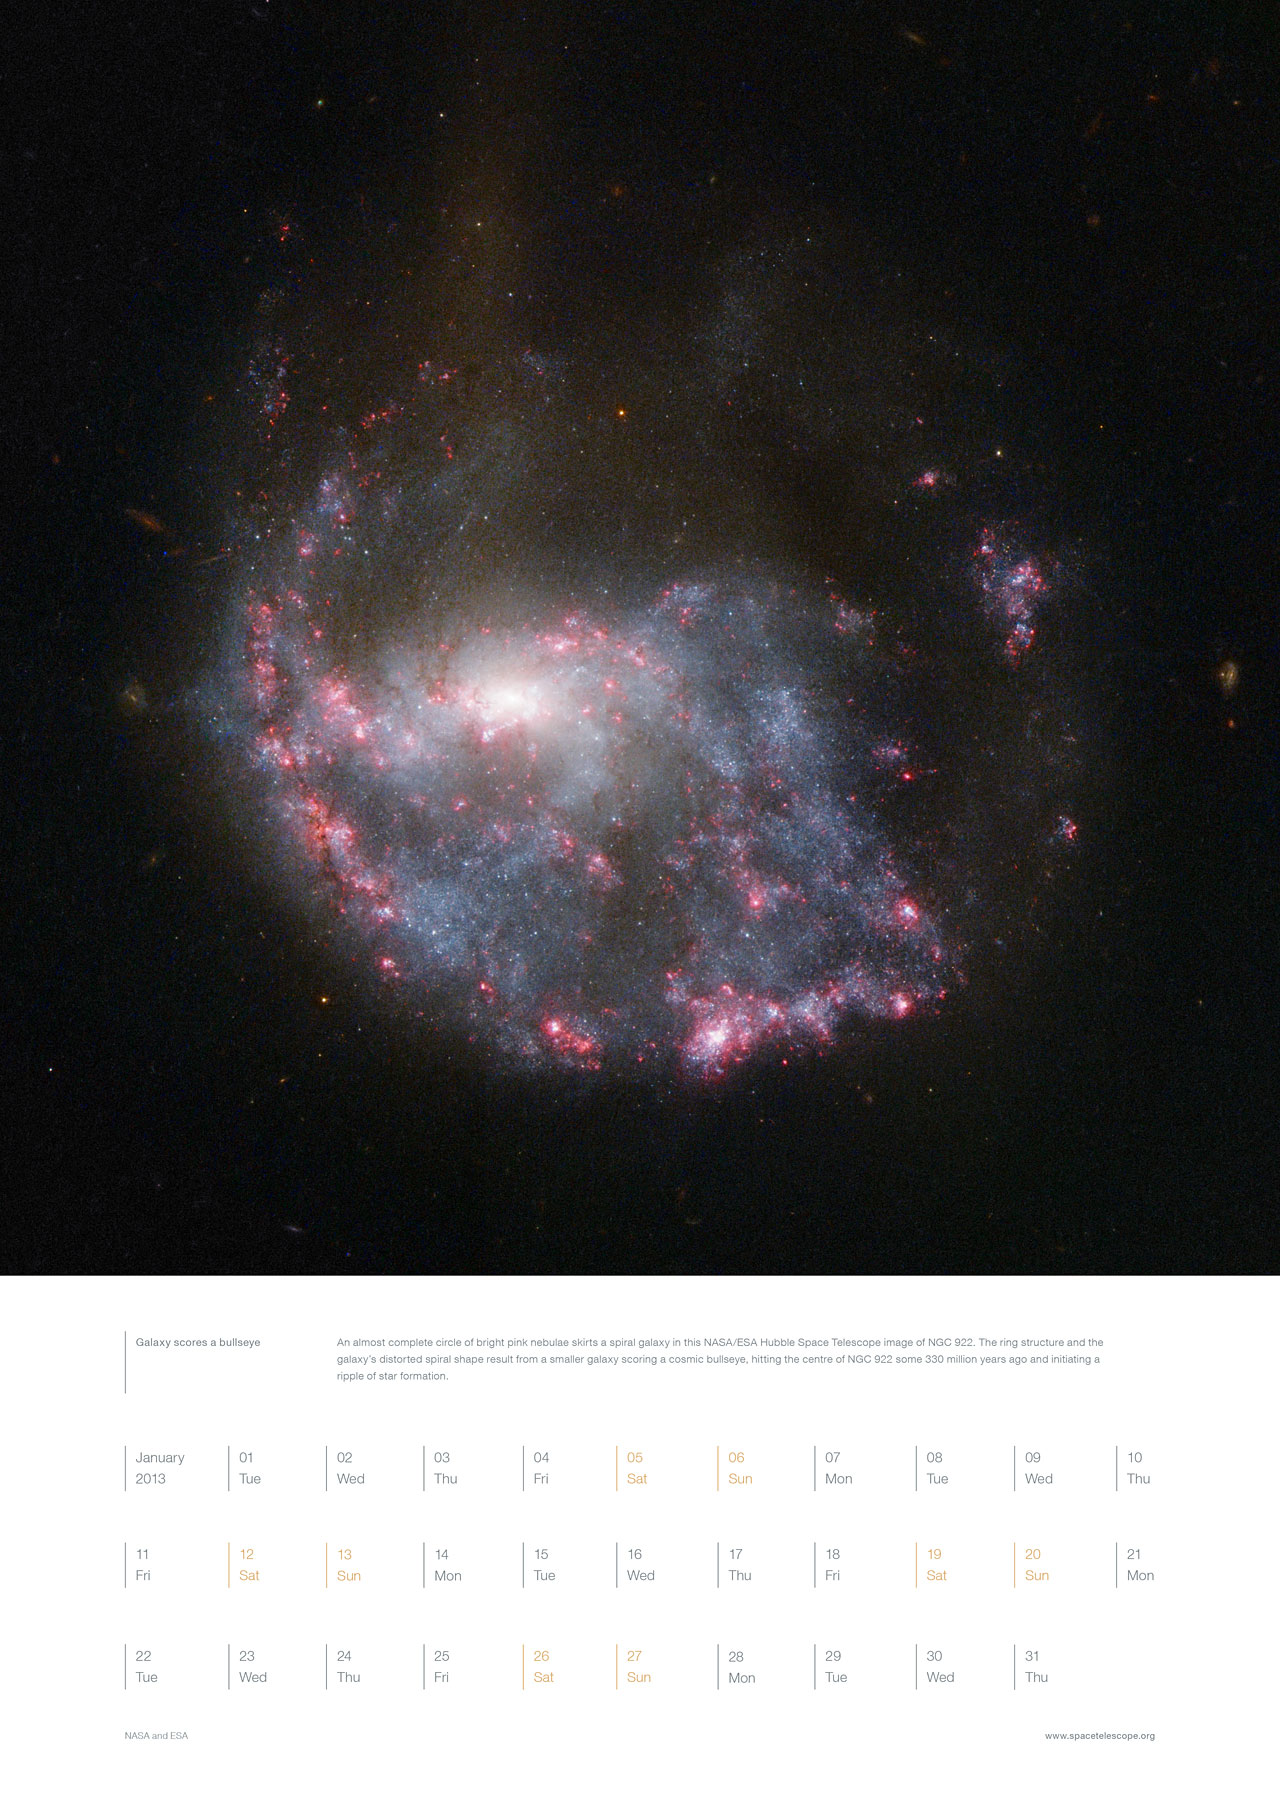 http://www.spacetelescope.org/static/archives/calendars/screen/cal201301.jpg